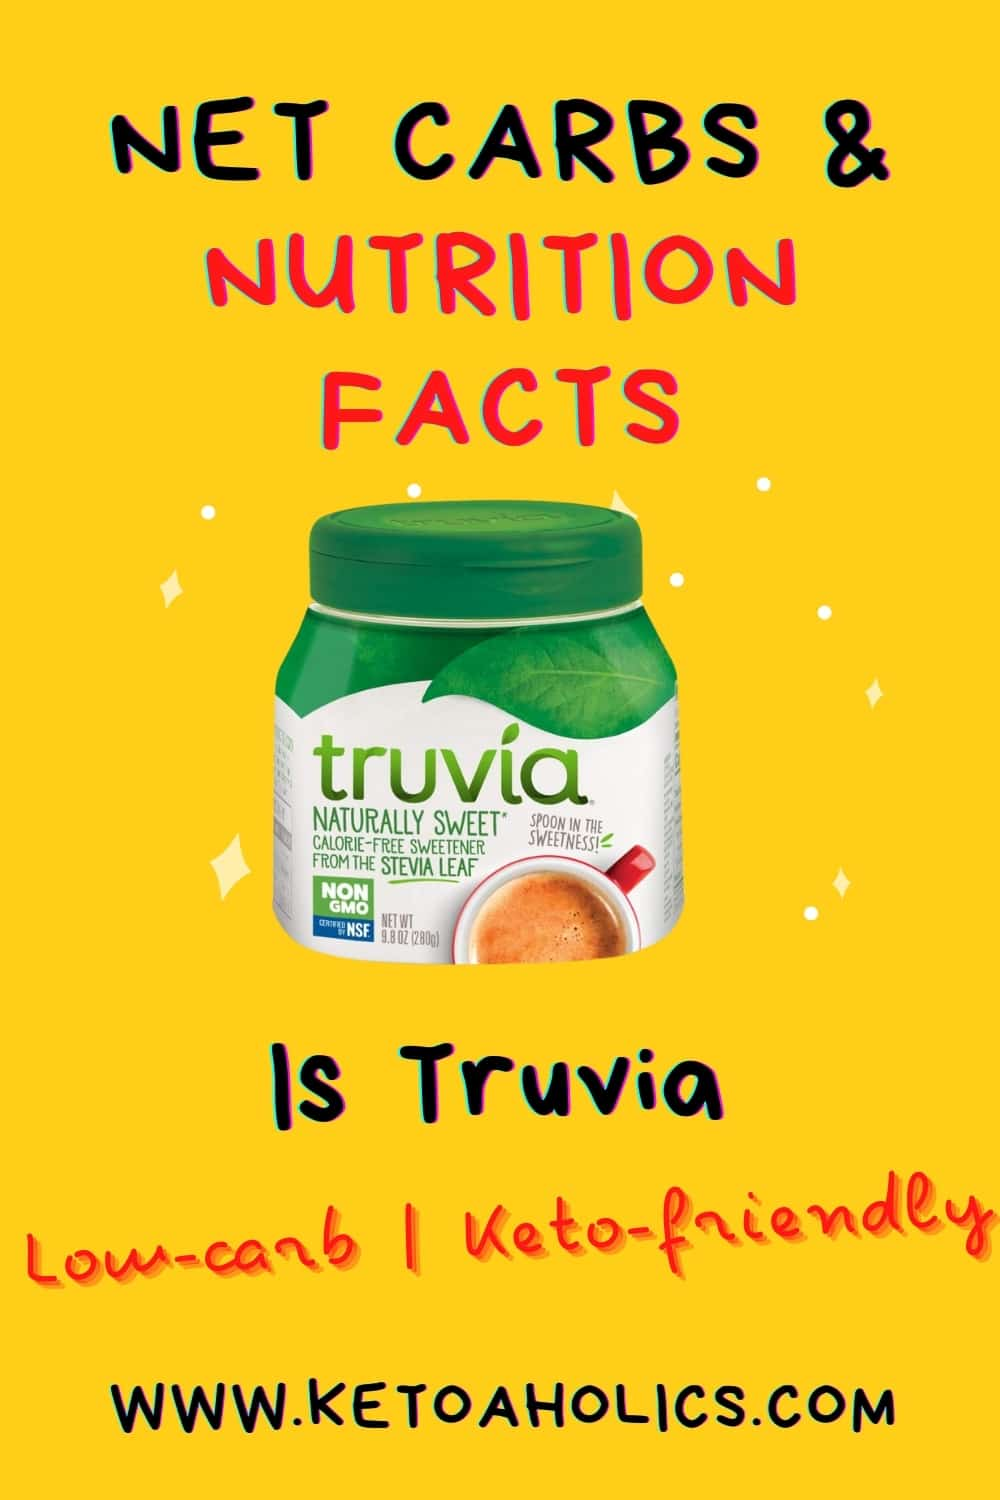 image of truvia net carbs & nutrion fact is it low carb keto friendly